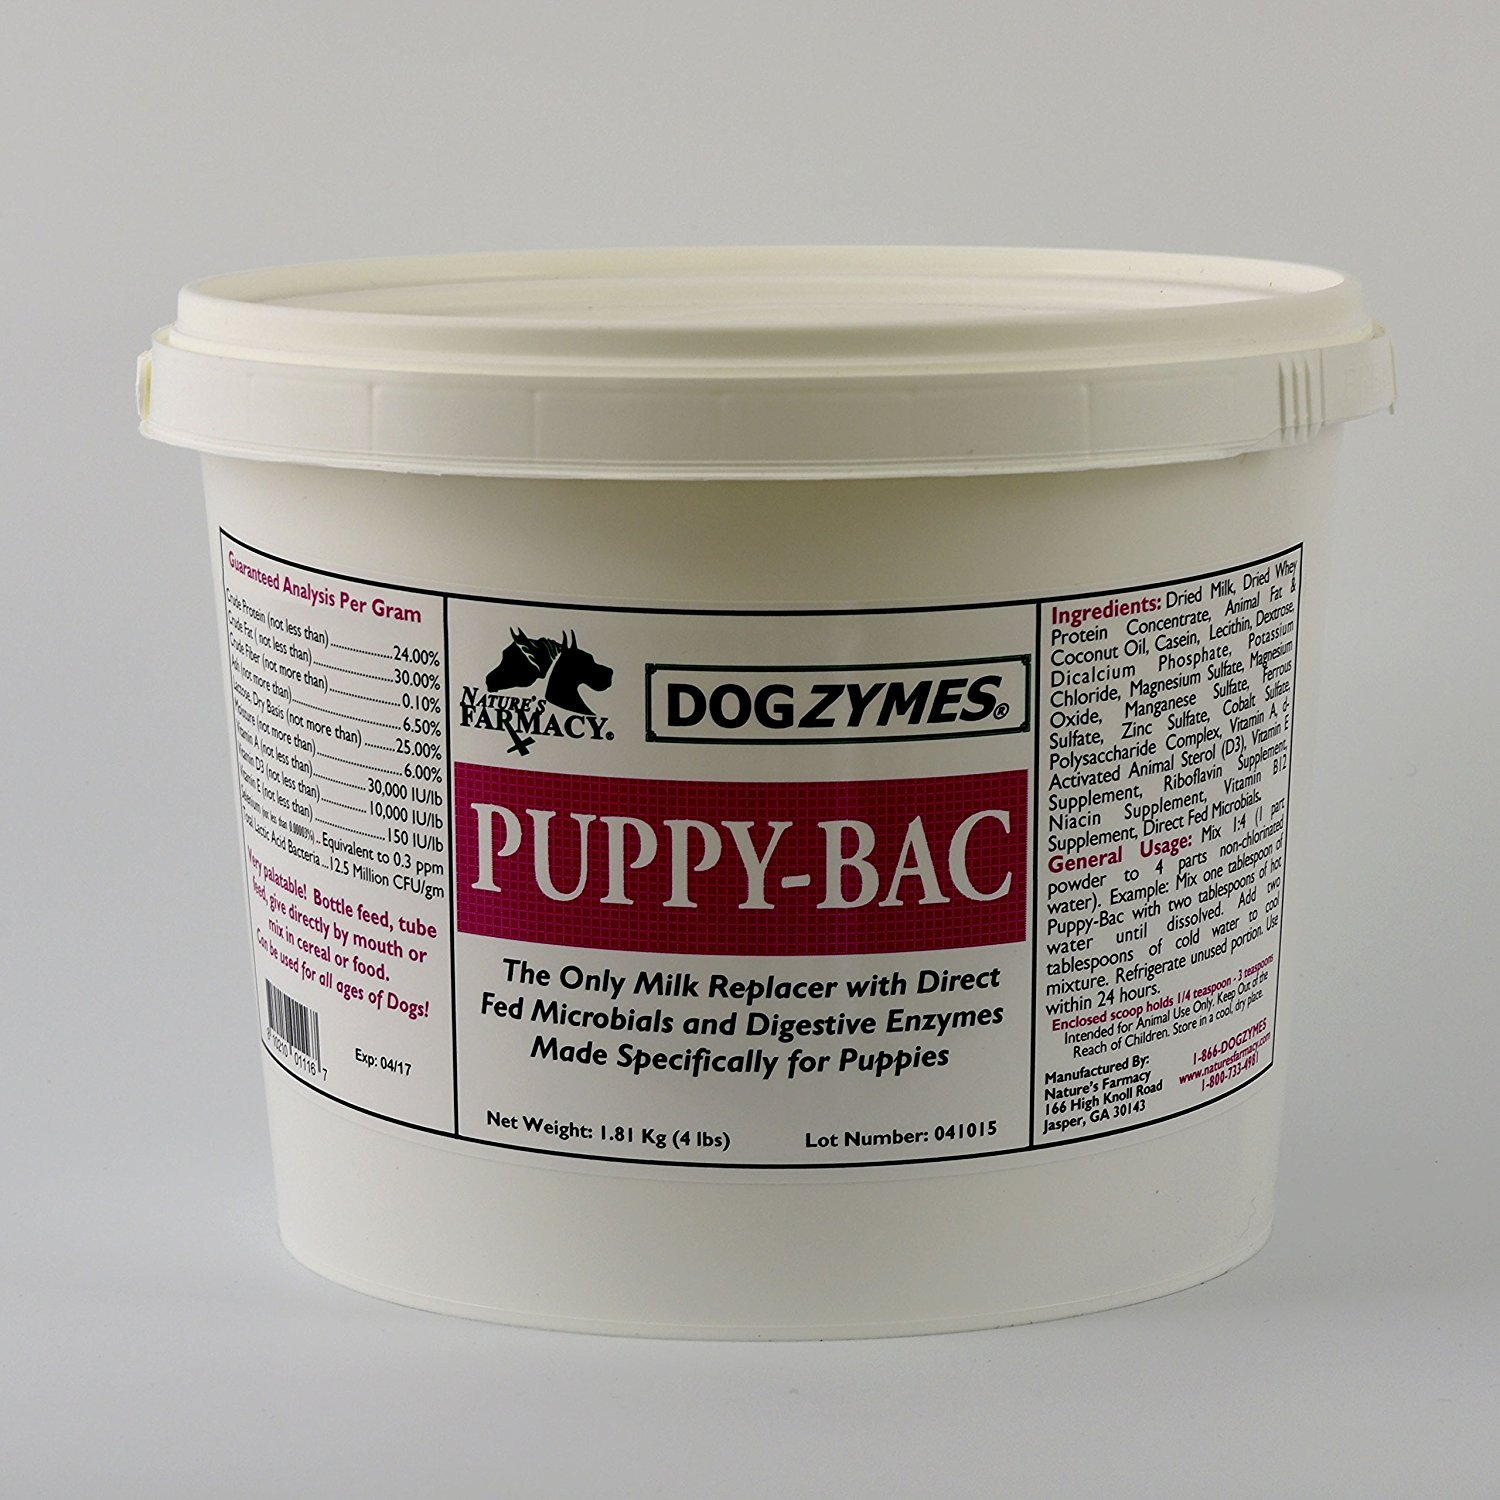 DOGZYMES Puppy Bac Milk Replacer, 4-Pound